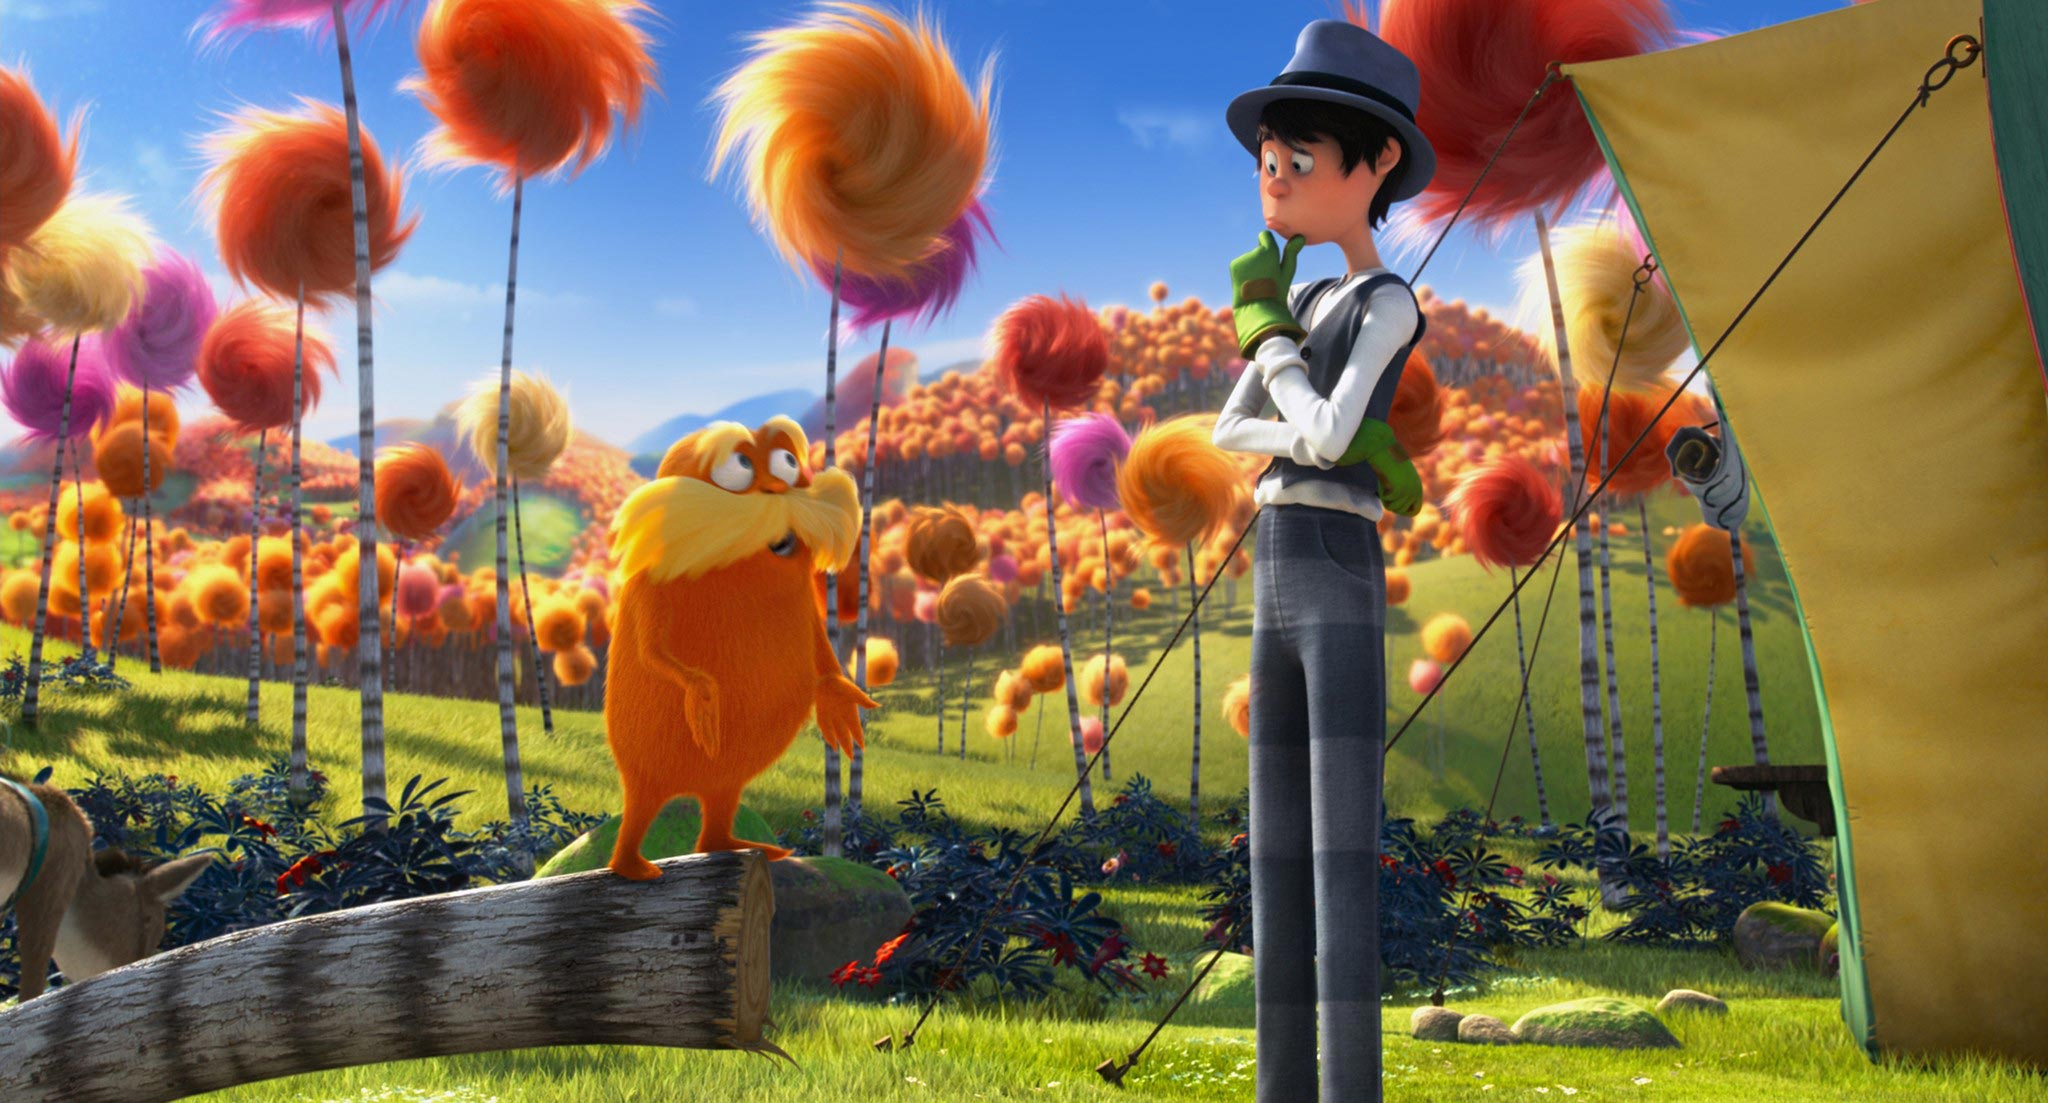 Weekend Box Office March 2 4